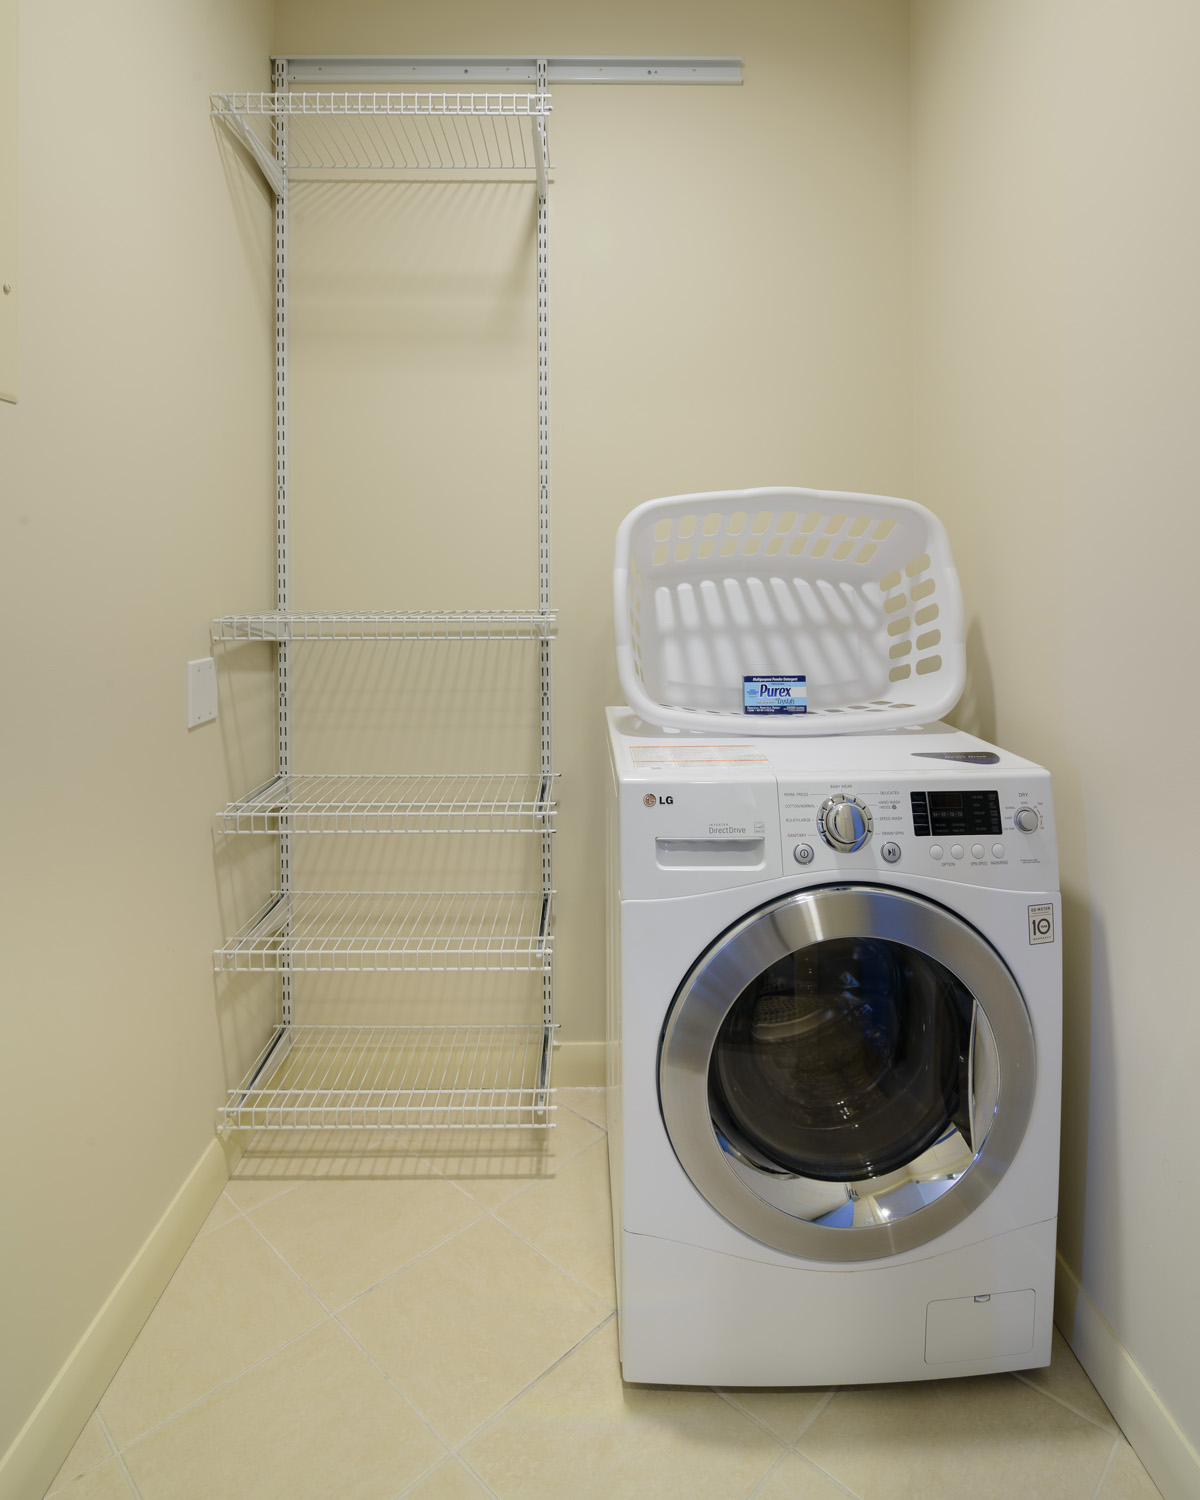 Apartment Hotel Washer Dryer